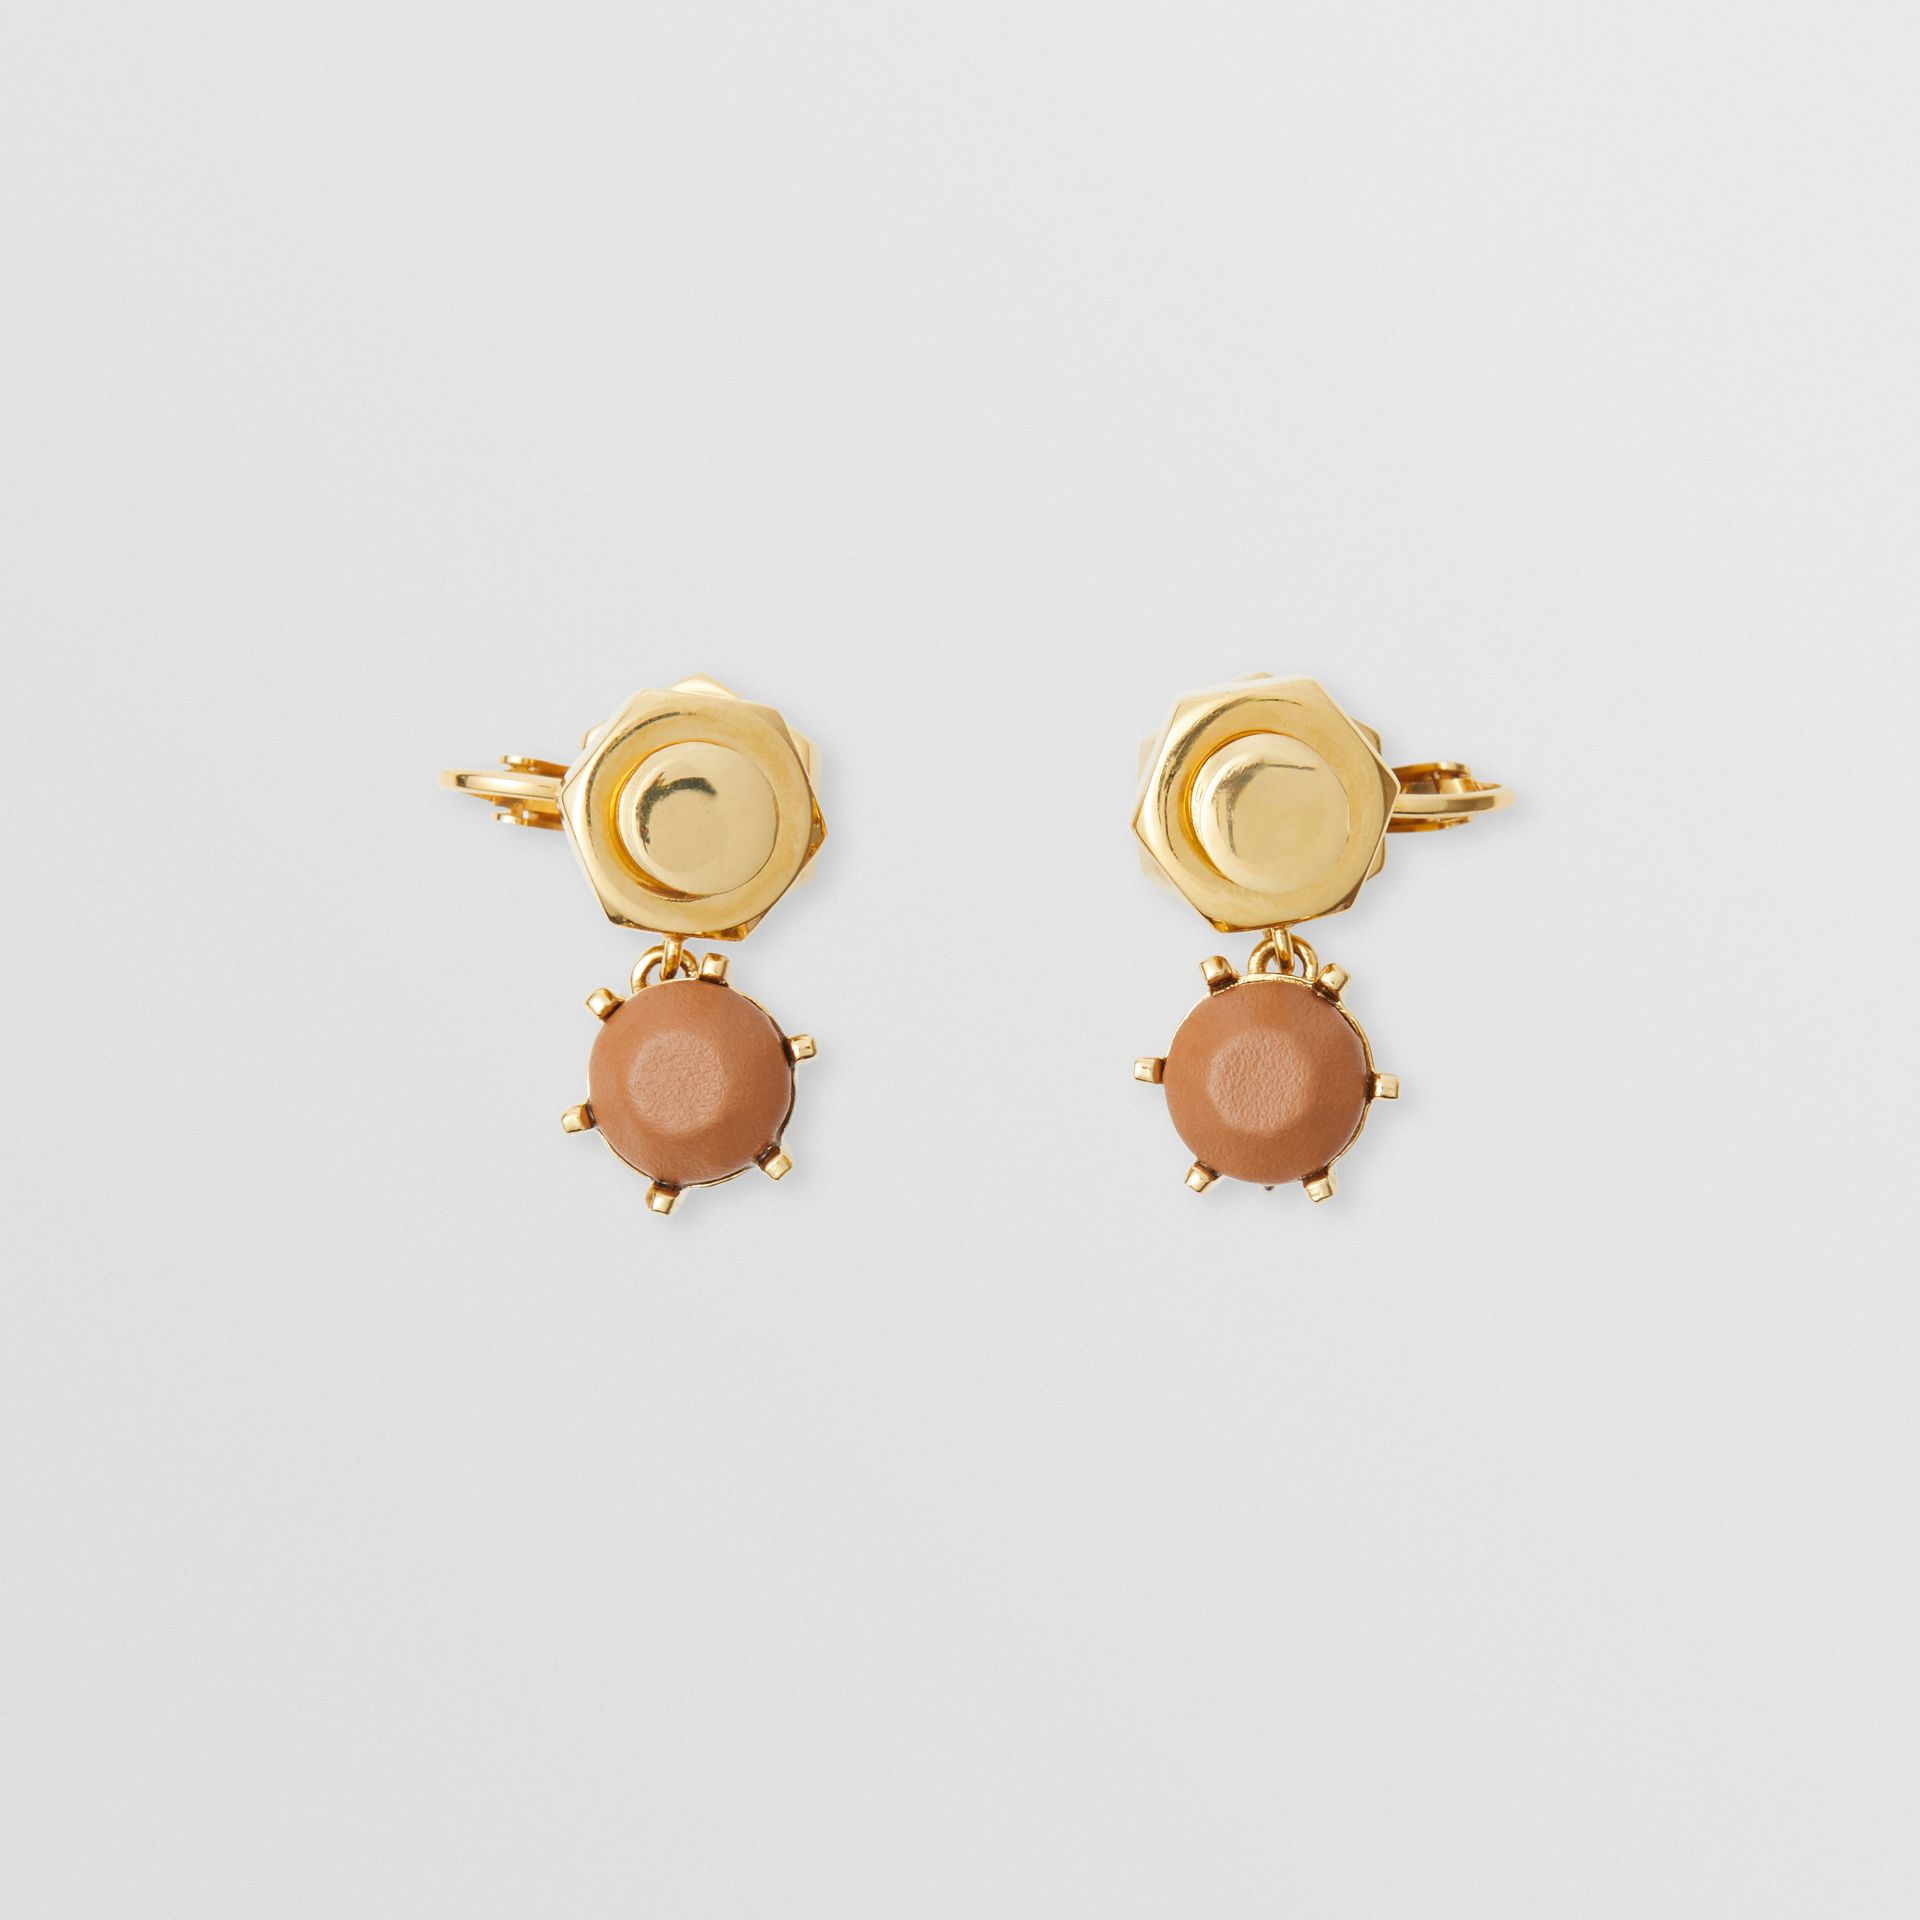 Leather Charm Gold-plated Nut and Bolt Earrings in Nutmeg/light - Women | Burberry United Kingdom - gallery image 0